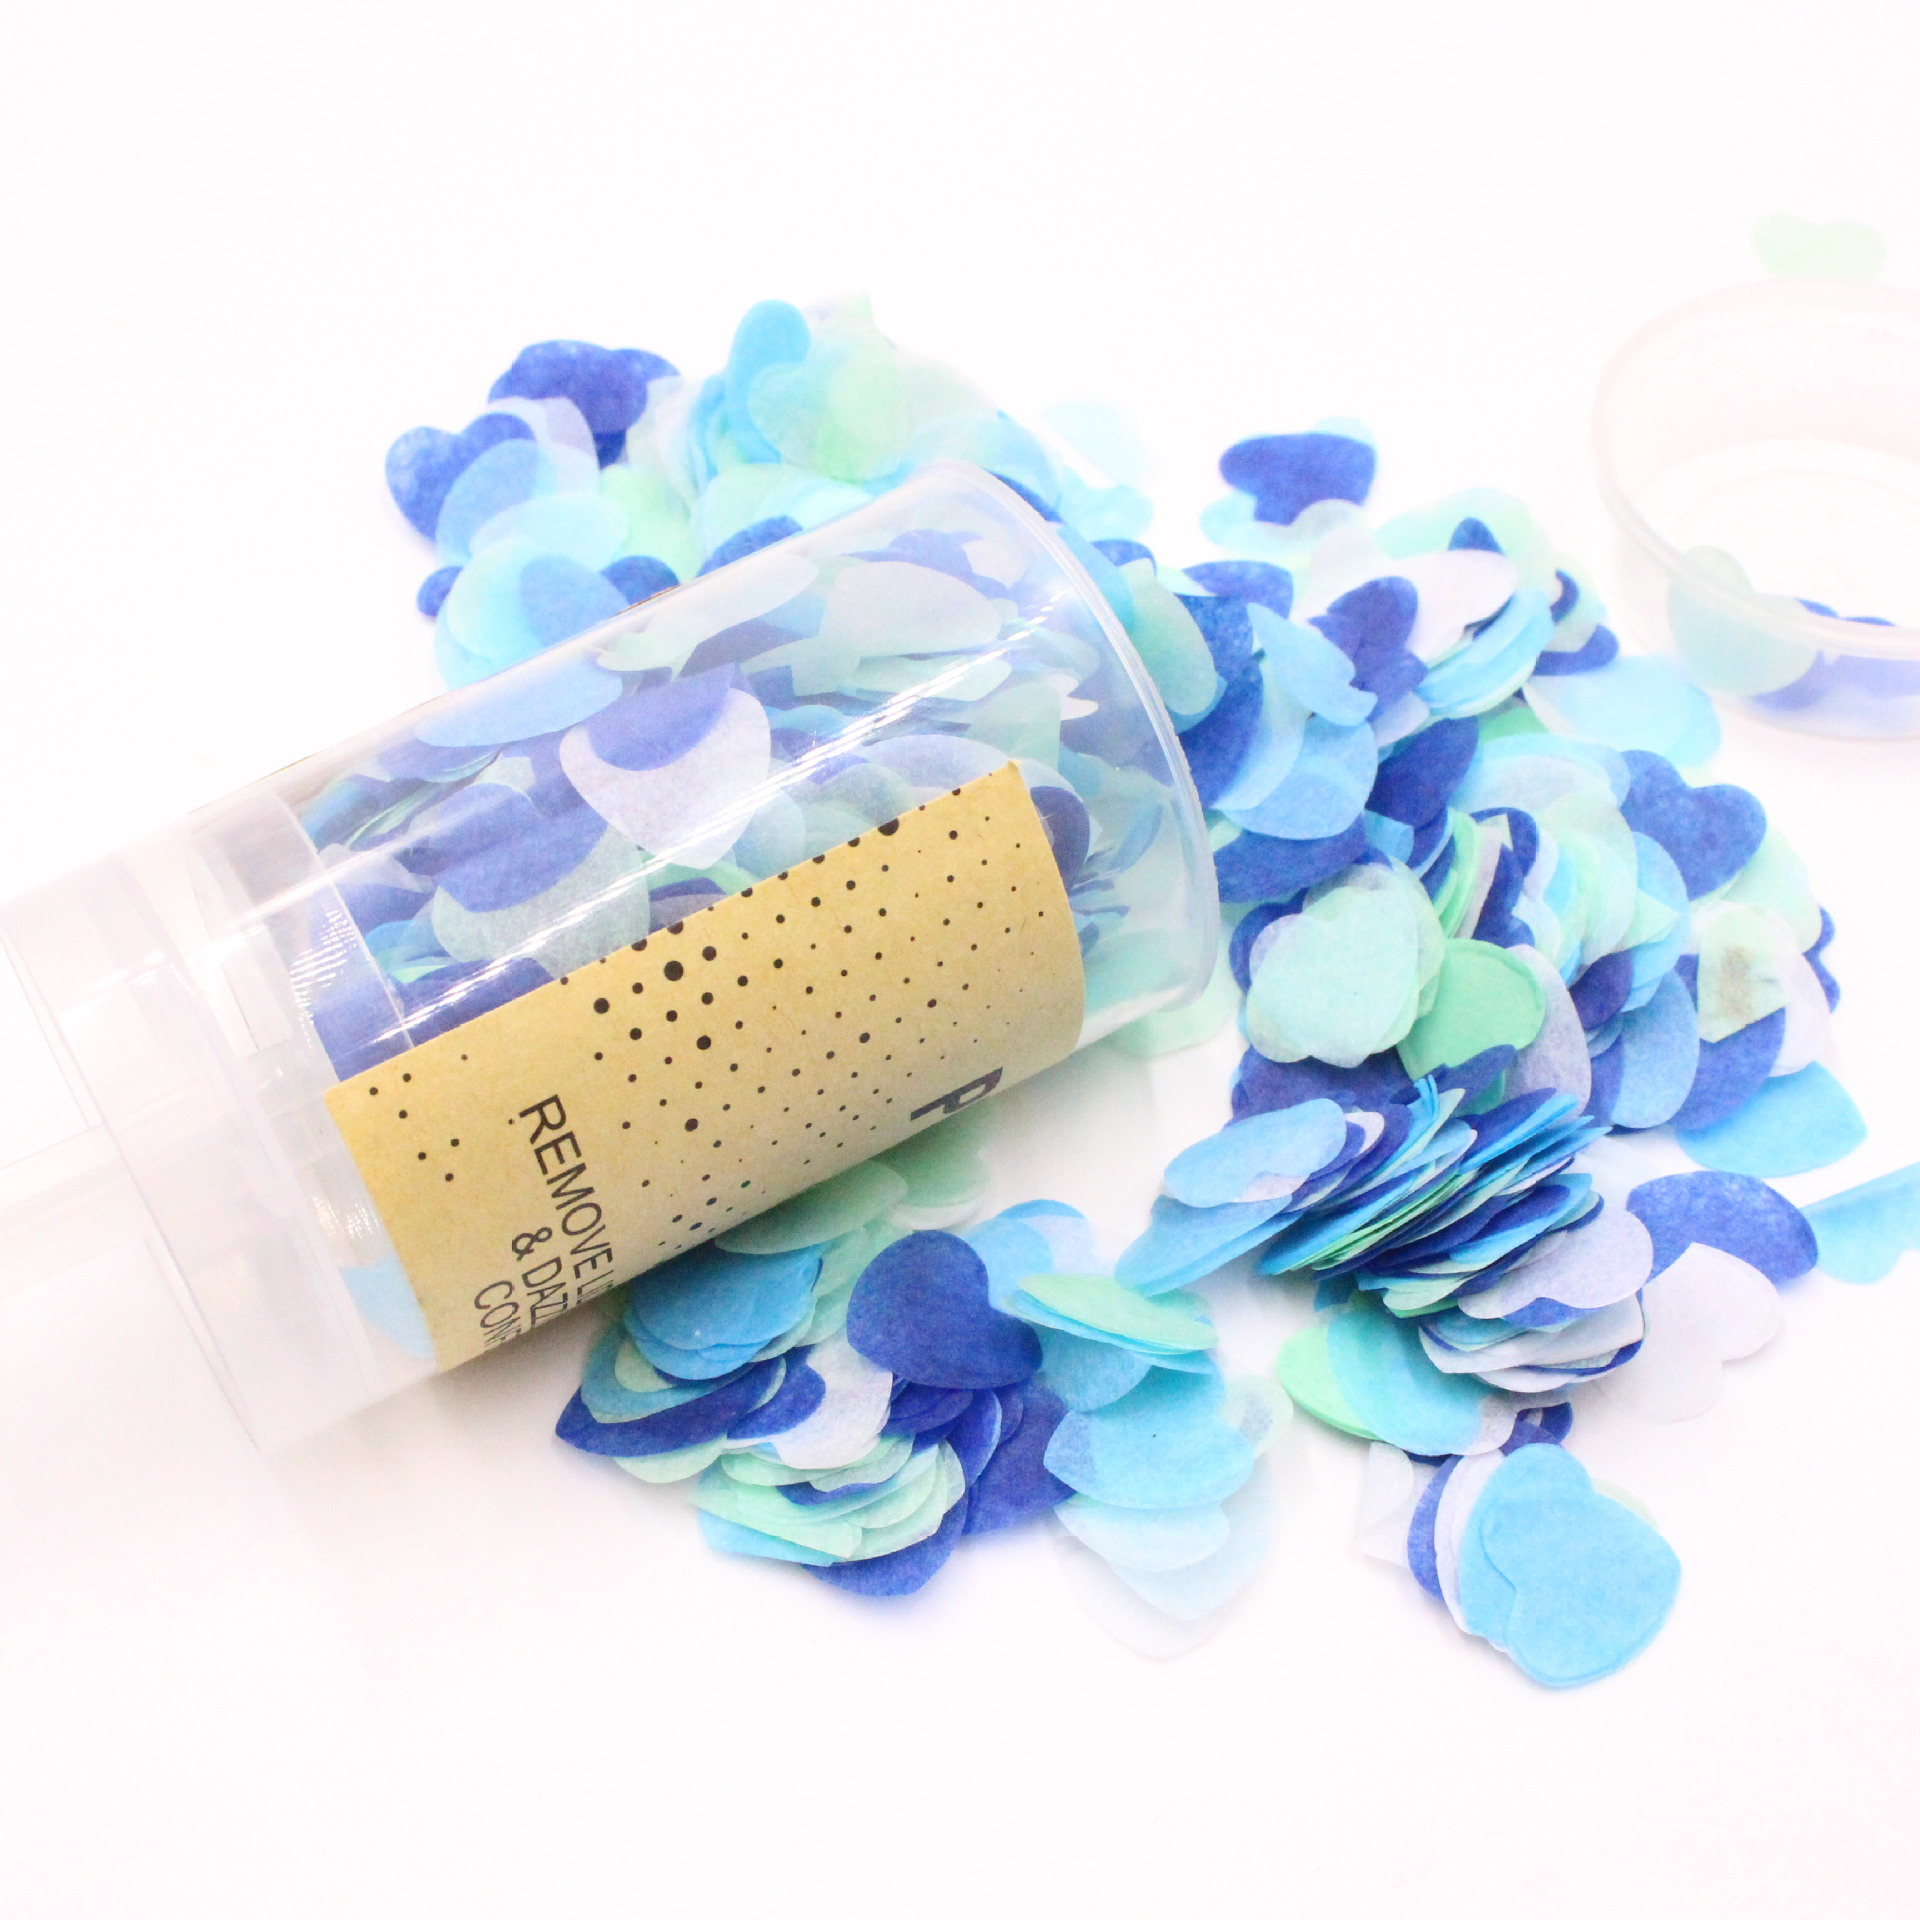 Baby shower Party Poppers Gender Reveal Poppers Biodegradable Tissue Paper Confetti, China Party Poppers, gender reveal poppers wholesale